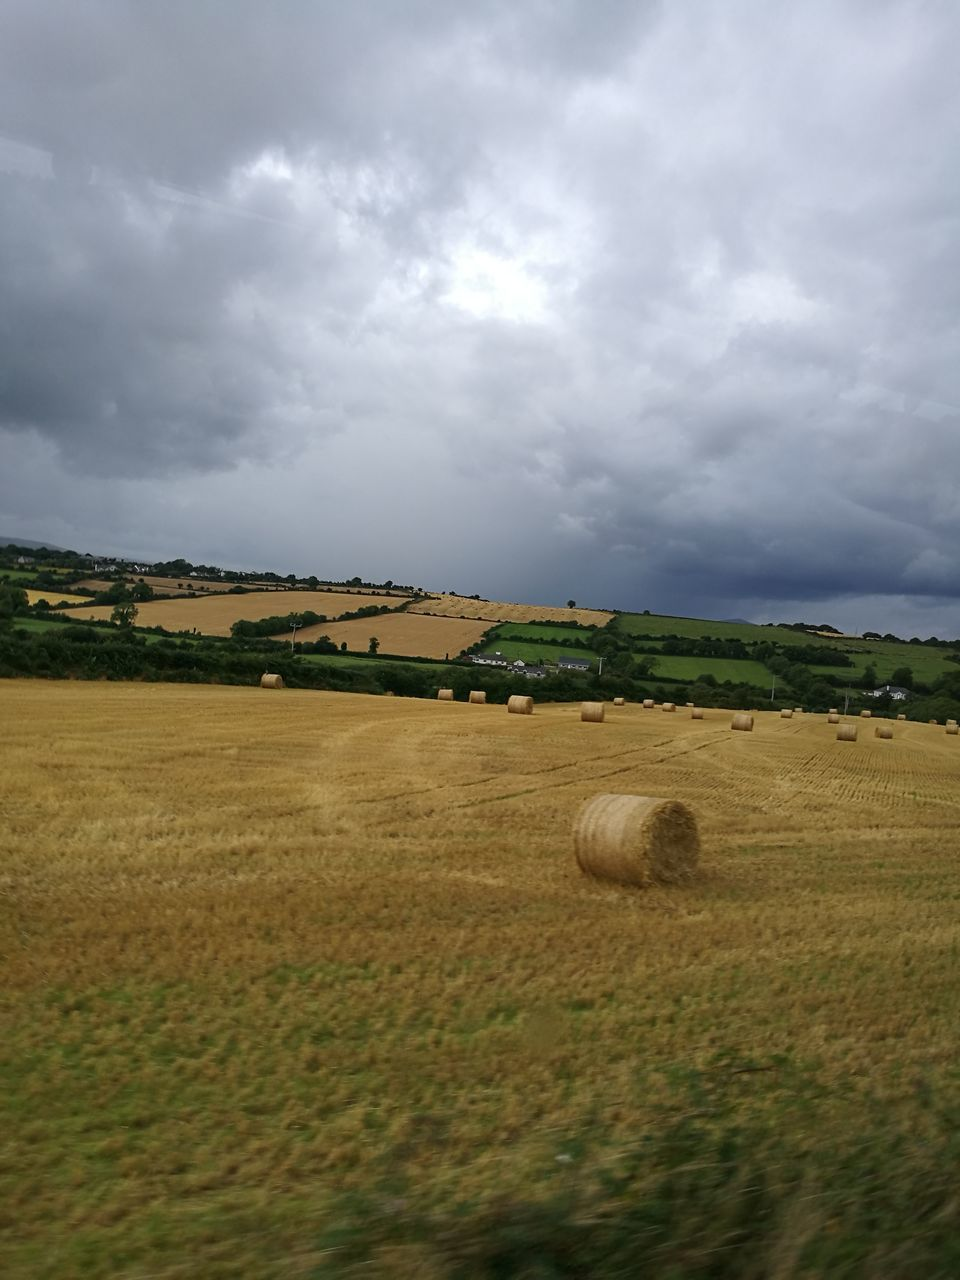 field, agriculture, landscape, bale, farm, cloud - sky, rural scene, nature, hay, tranquil scene, tranquility, beauty in nature, sky, hay bale, scenics, crop, no people, day, grass, outdoors, tree, combine harvester, mammal